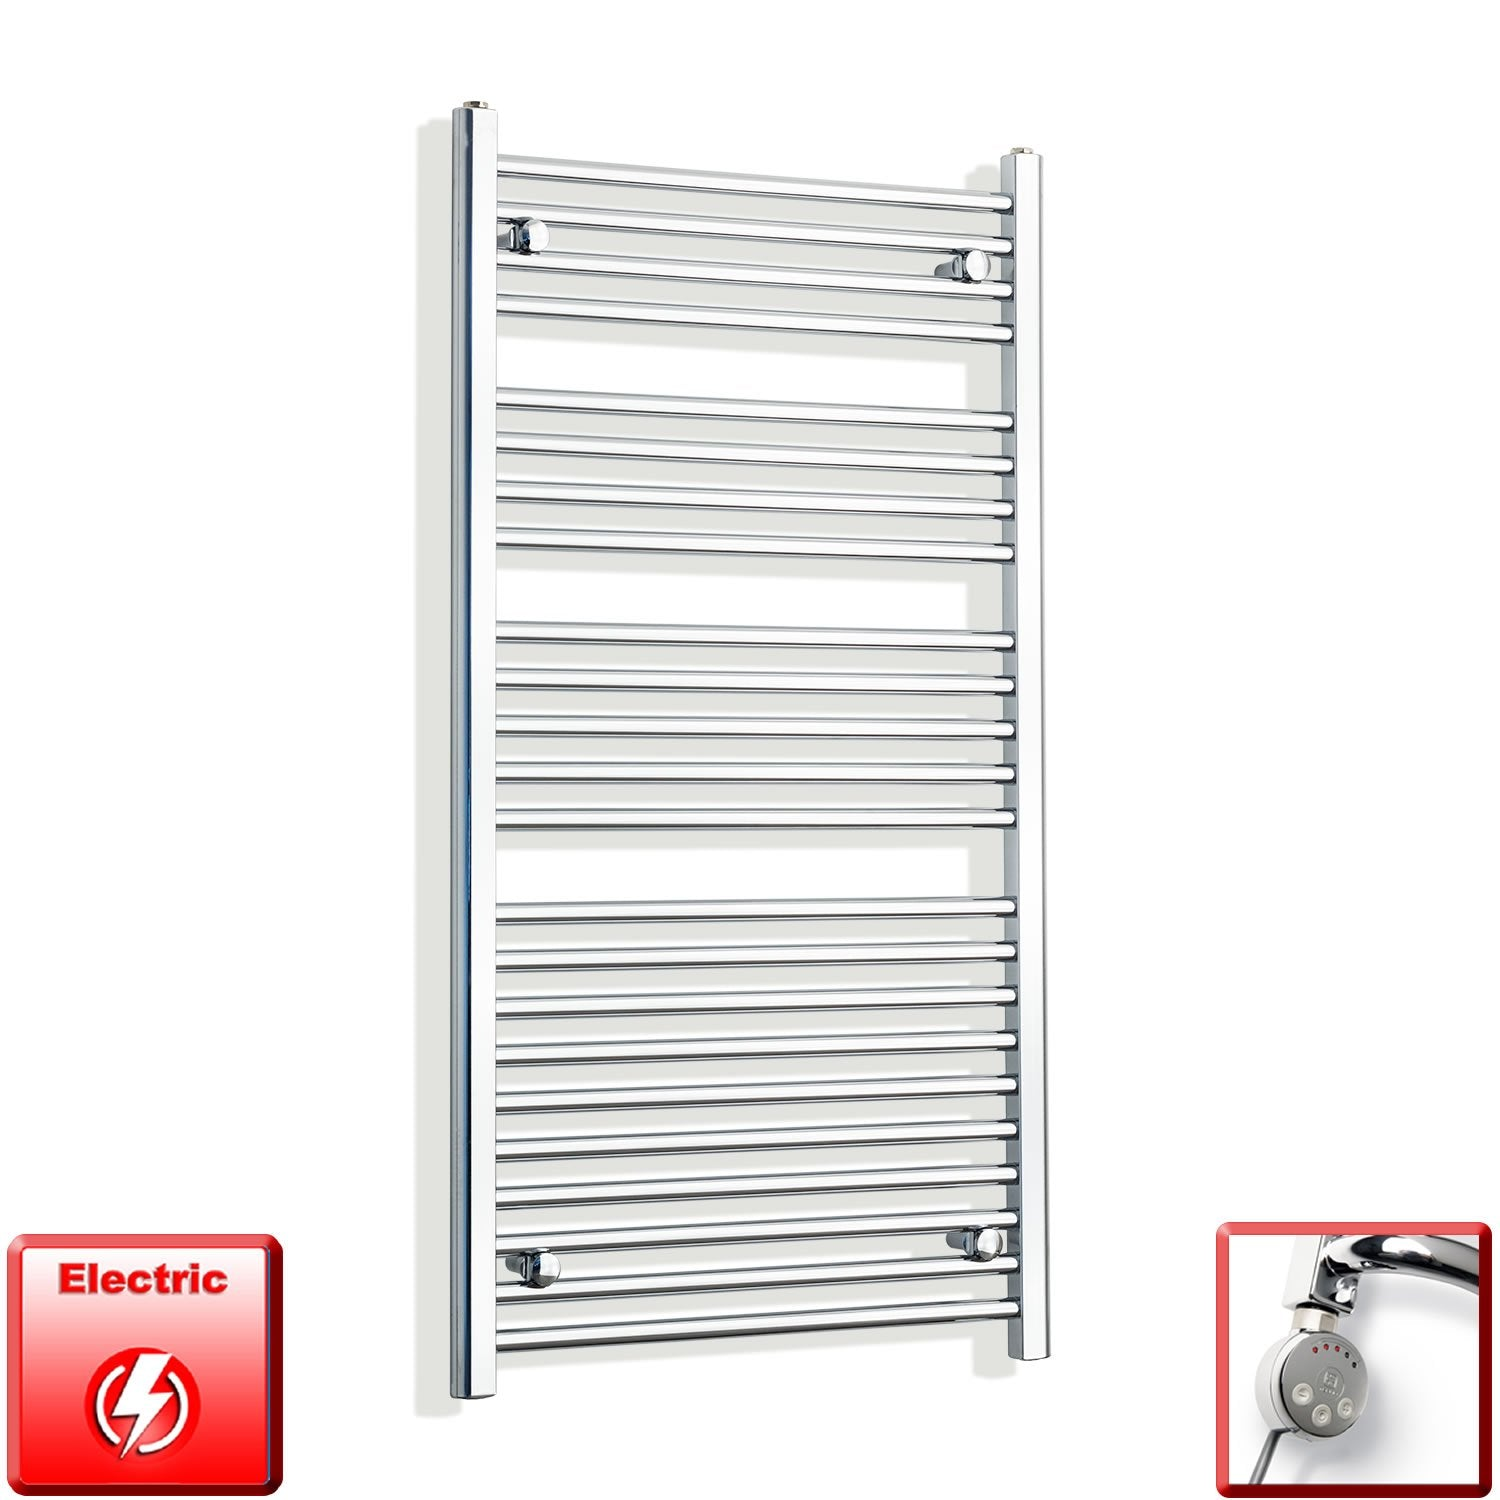 700mm Wide 1200mm High Flat Or Curved Chrome Pre-Filled Electric Heated Towel Rail Radiator HTR,MEG Thermostatic Element / Straight